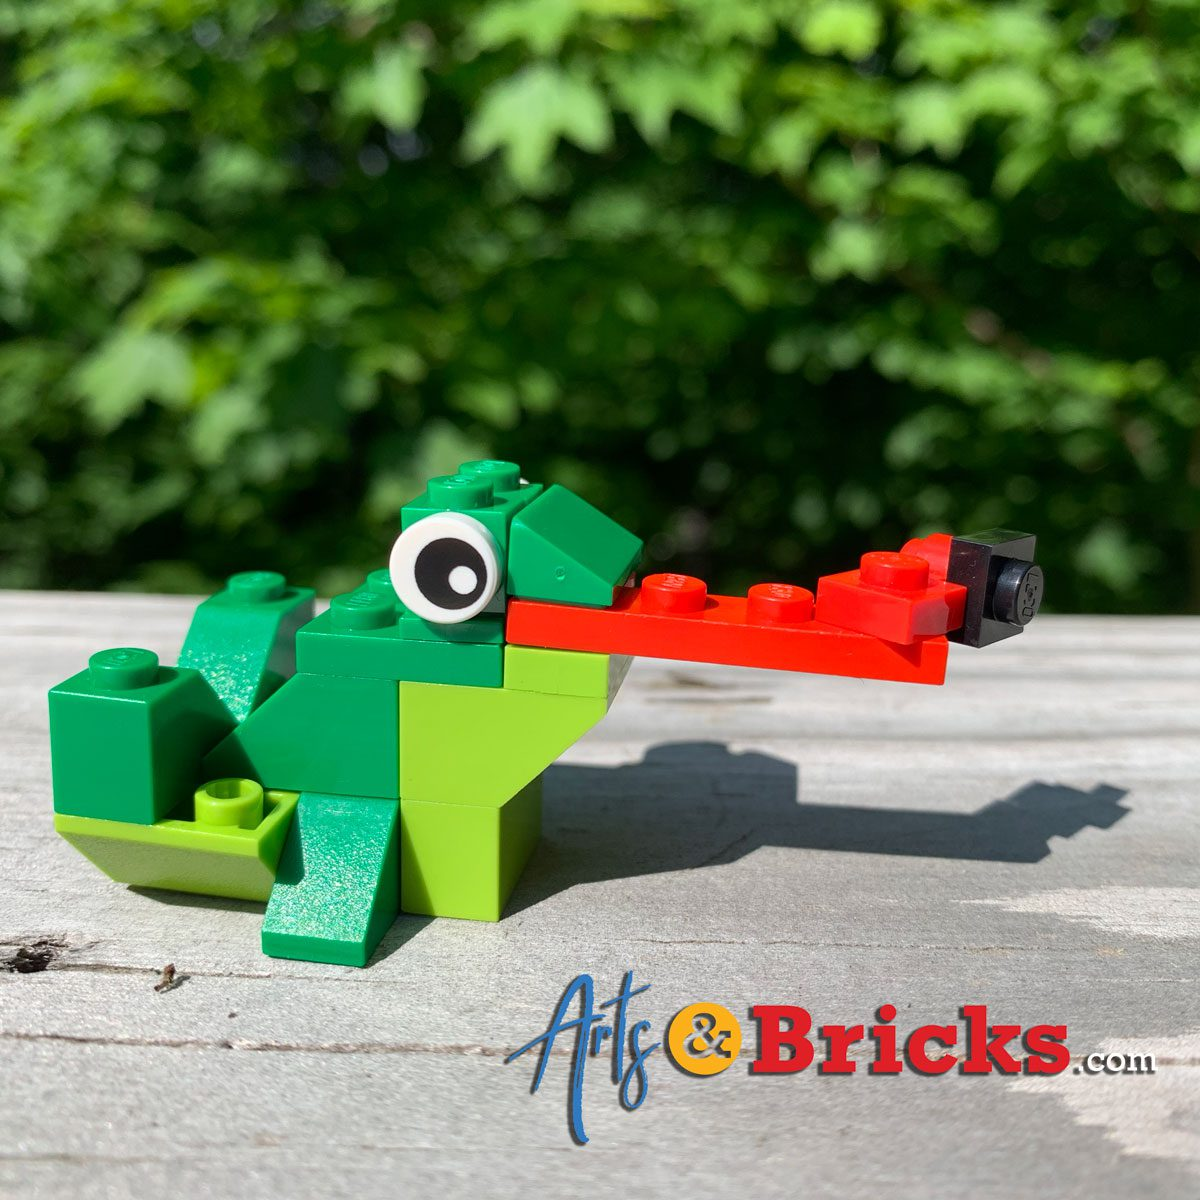 Kids' Frog Art and Frog LEGO builds